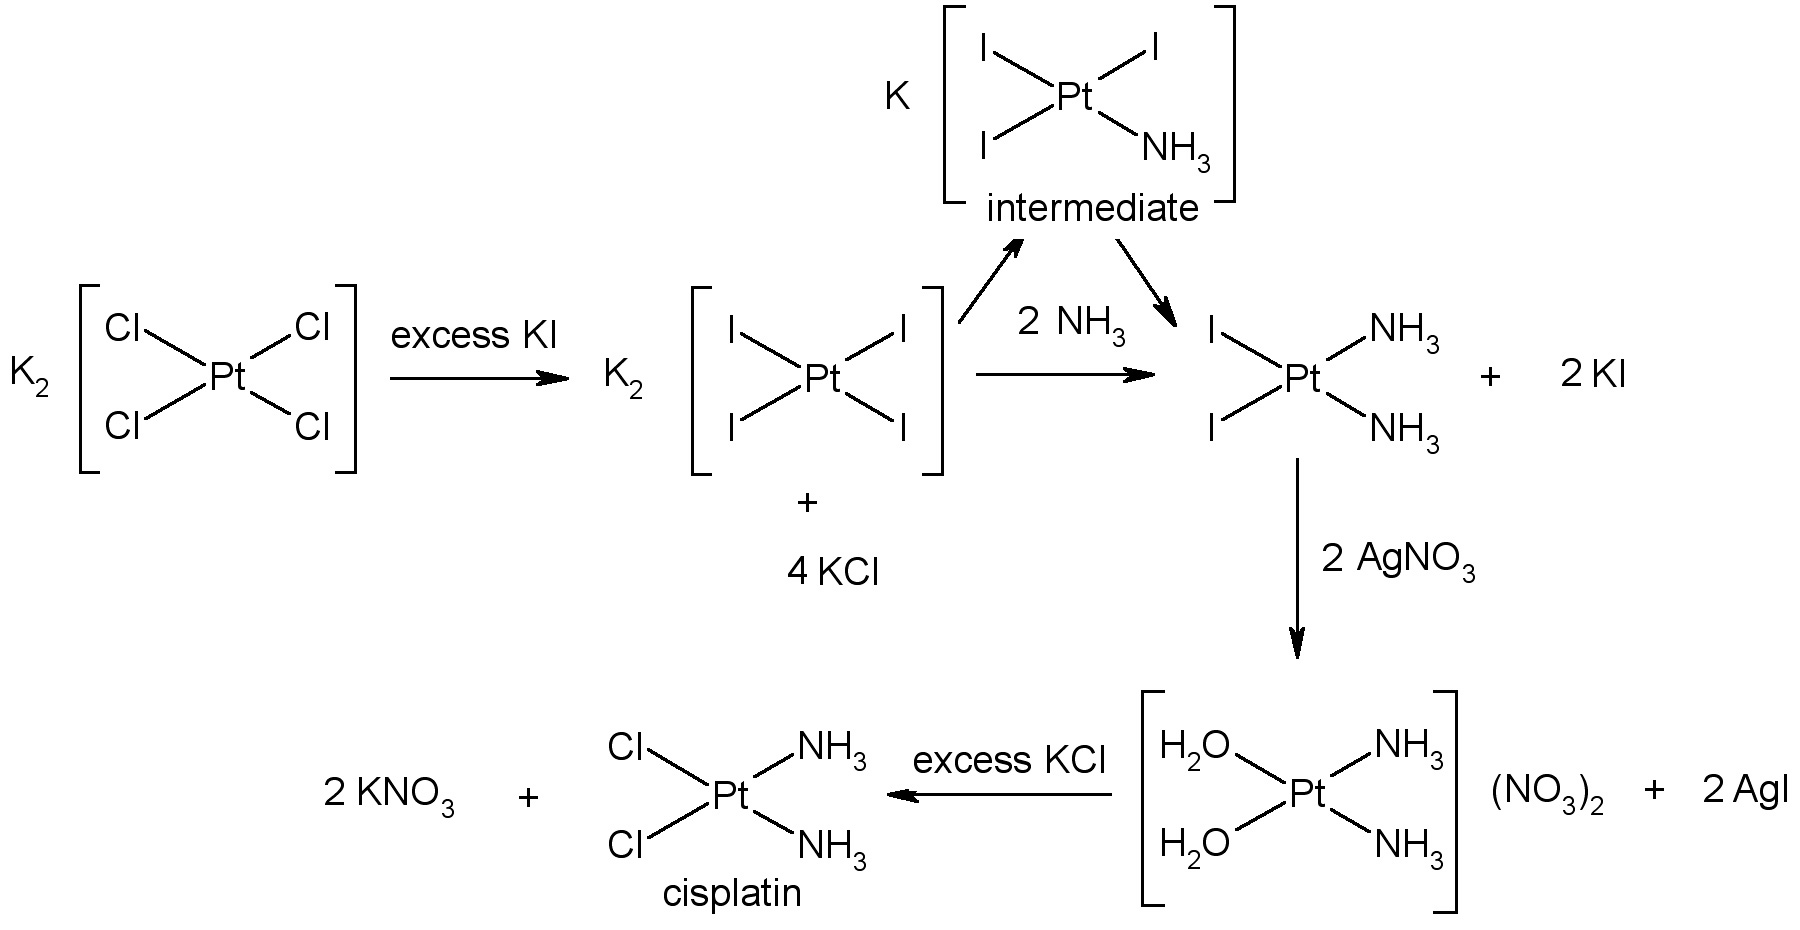 Synthesis of cisplatin